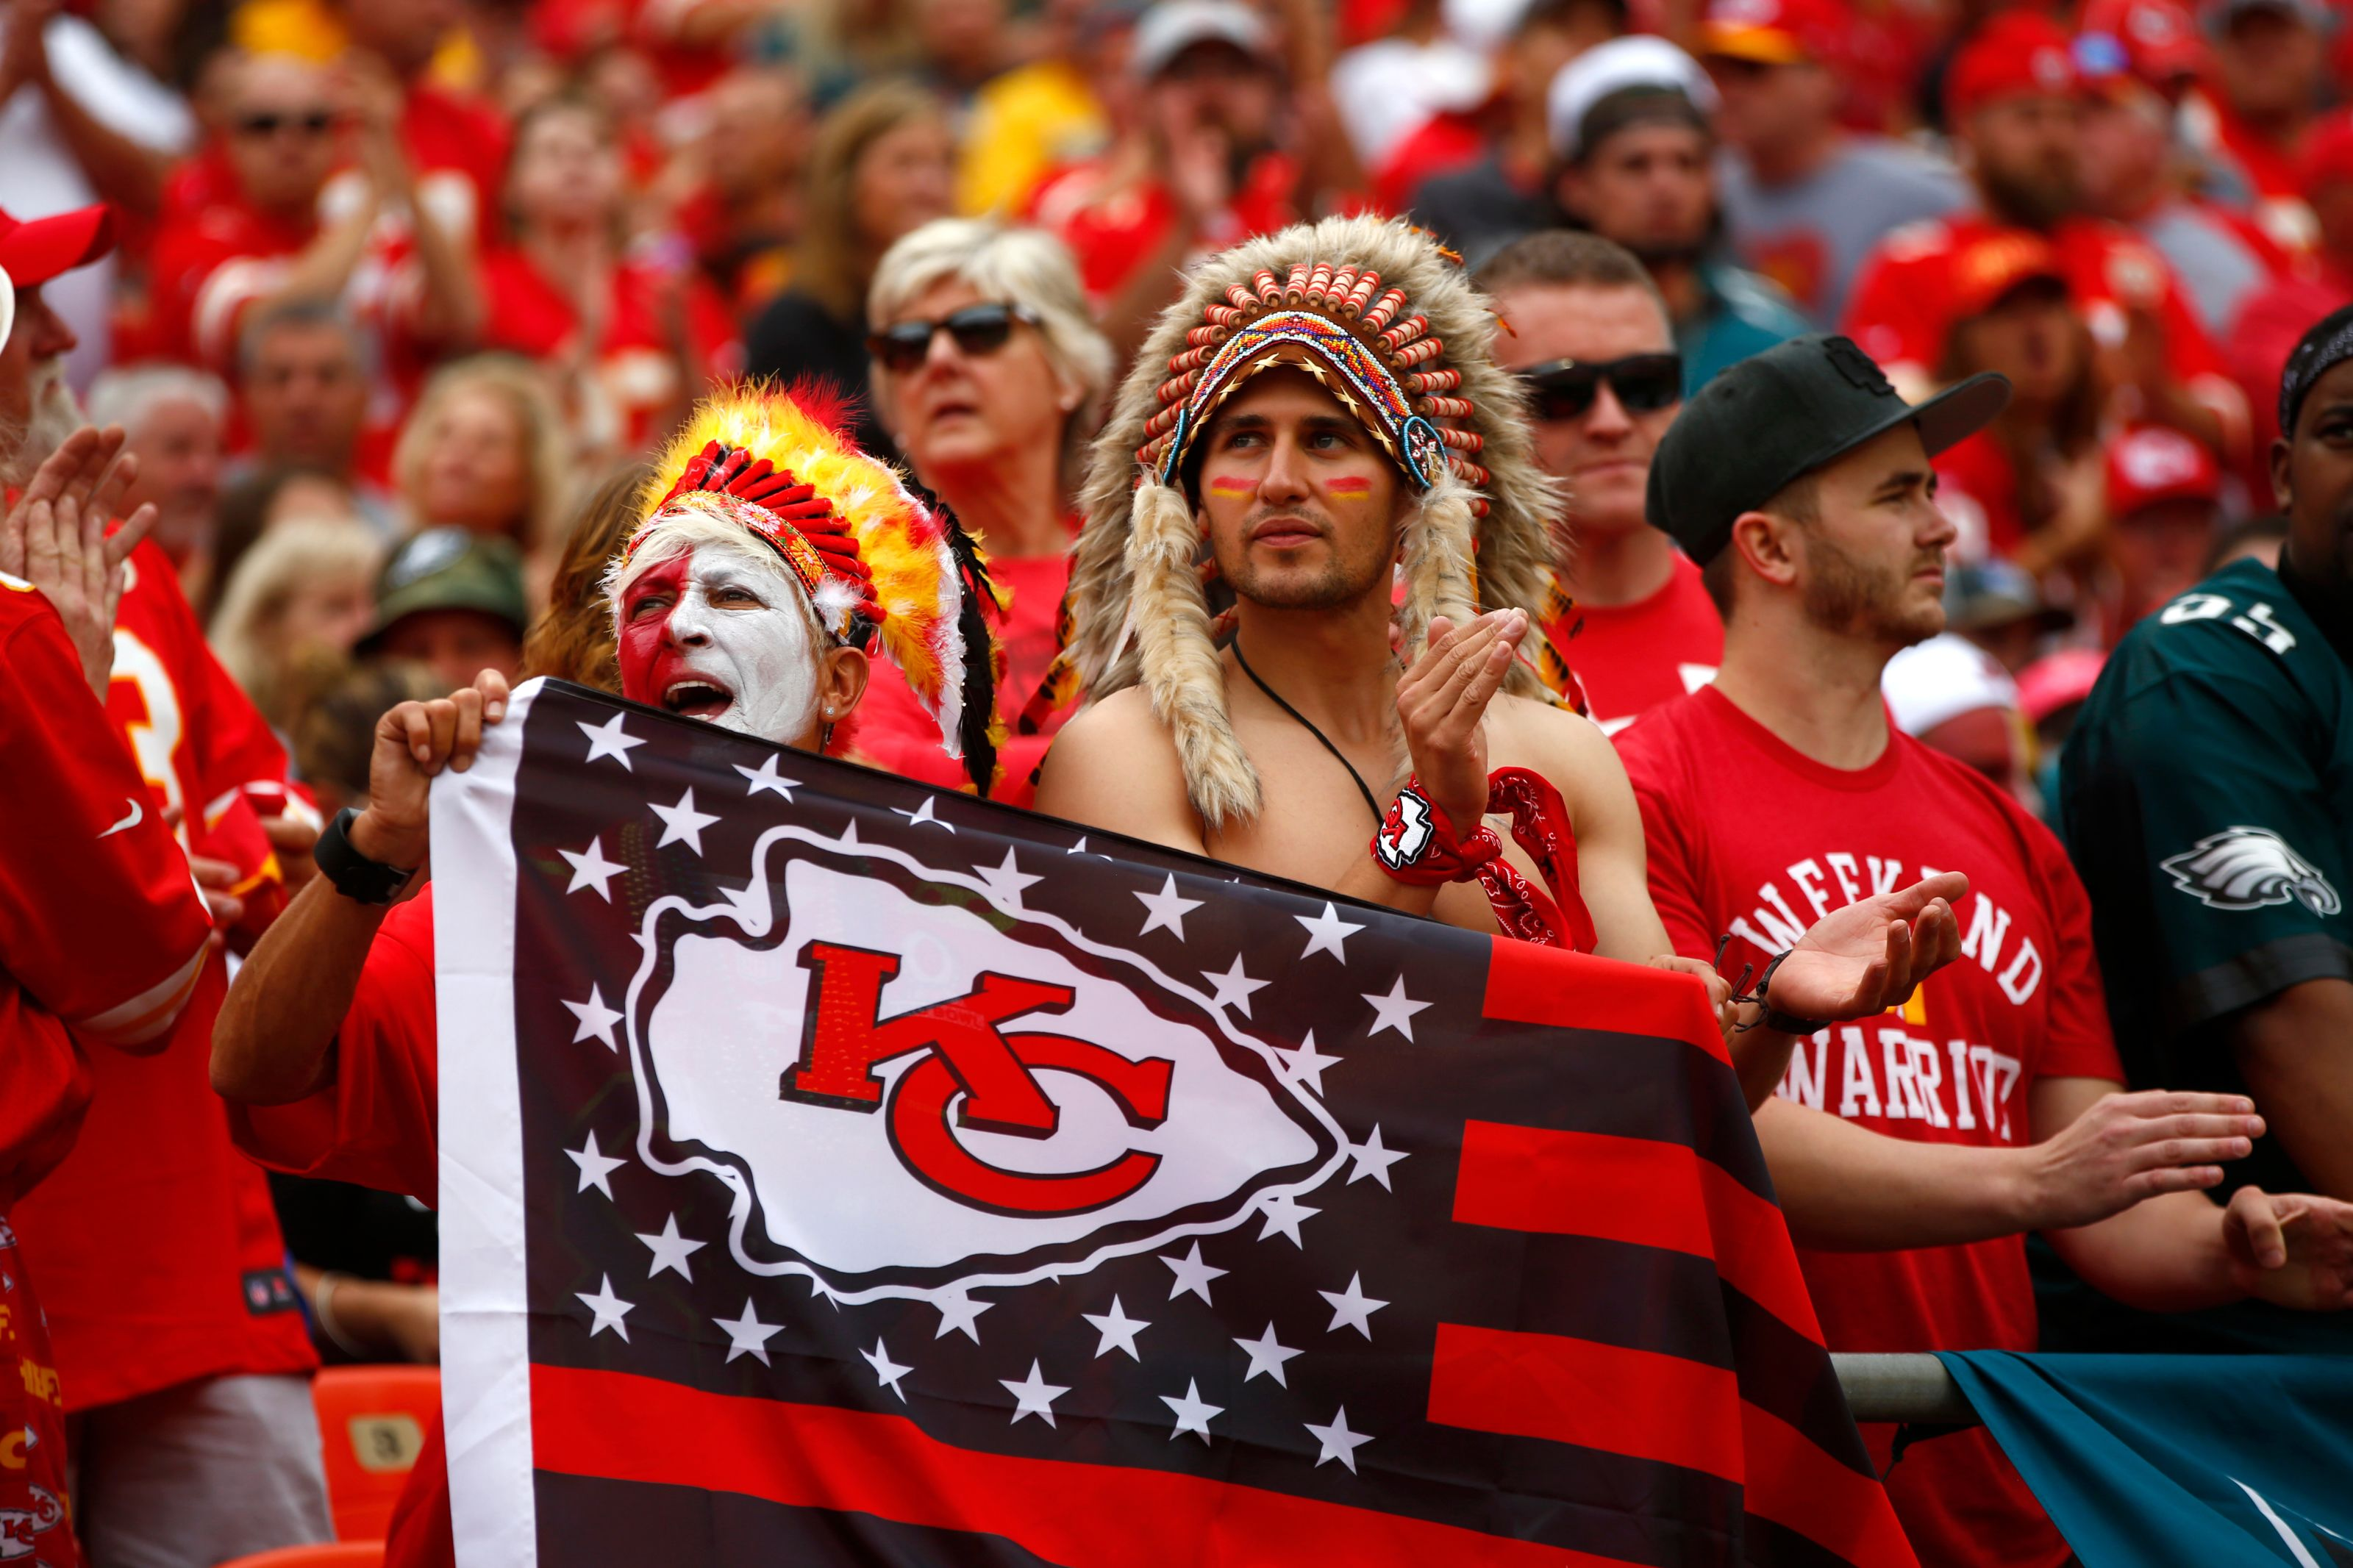 Kansas City Chiefs fans wait for the start of the game in the stands prior to the game against the Philadelphia Eagles at Arrowhead Stadium on September 17, 2017 in Kansas City, Missouri. ( Photo by Jamie Squire/Getty Images)